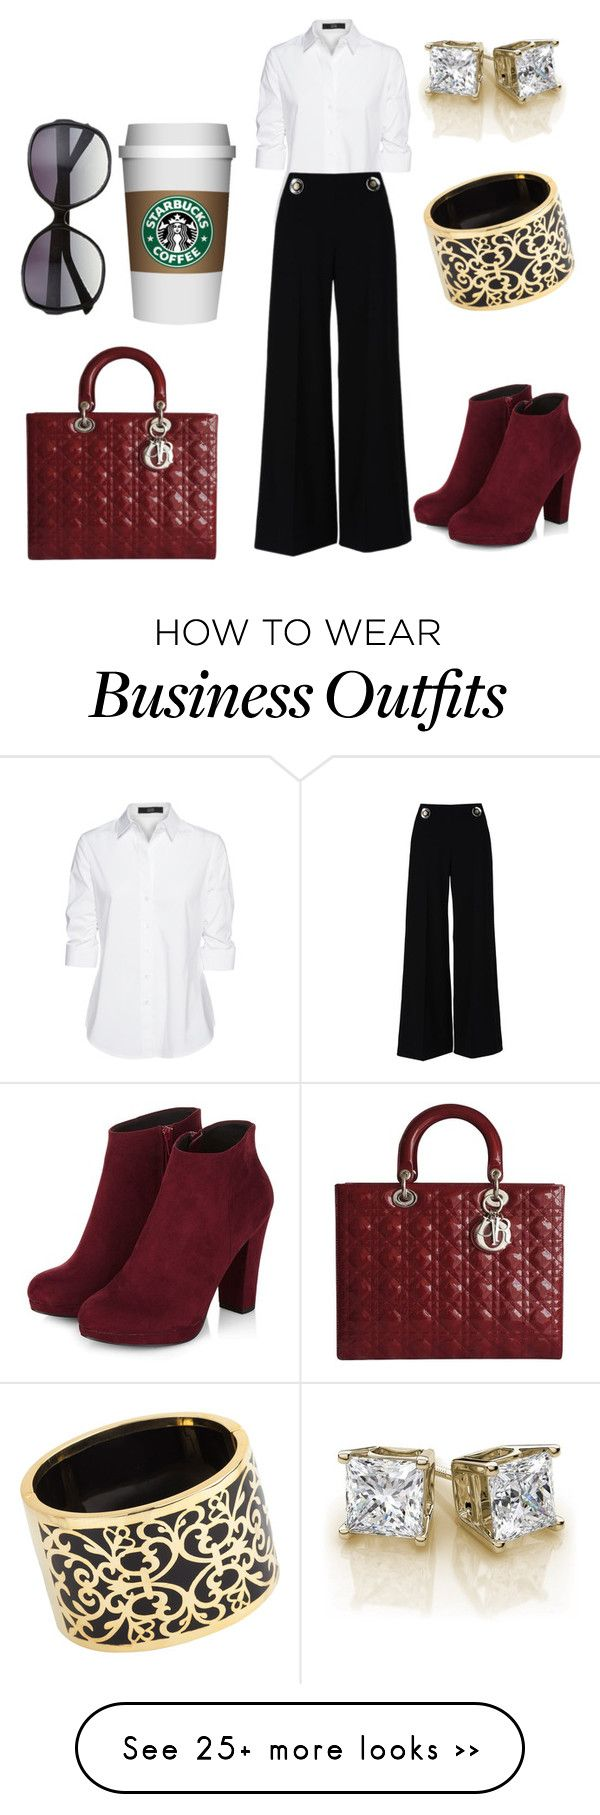 """Fall work wear"" by sets-by-mireya on Polyvore featuring Steffen Schraut, STELLA McCARTNEY, Miriam Salat, Vince Camuto, Christian Dior, love, burgundy and 2015"